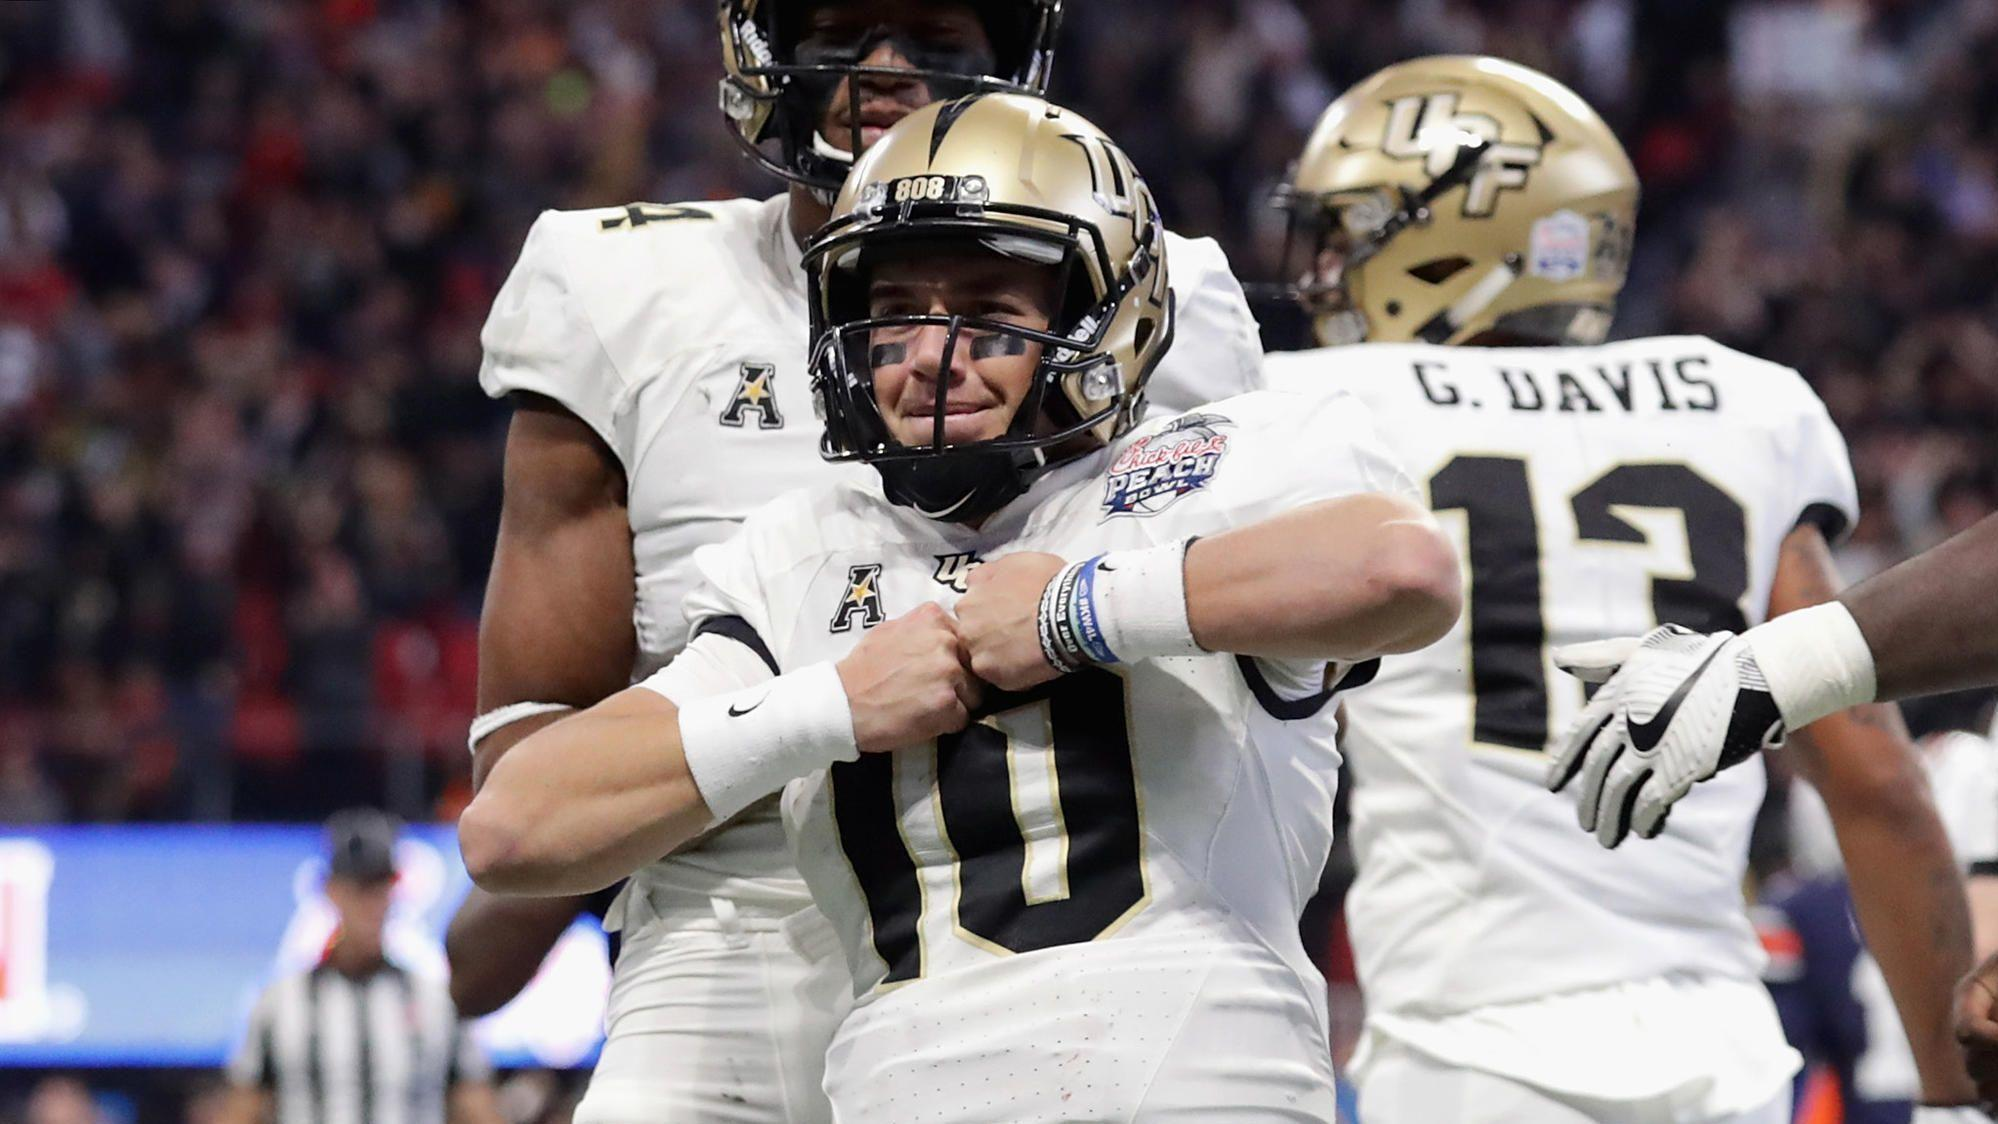 ucf football conference american athletic aac champions sports